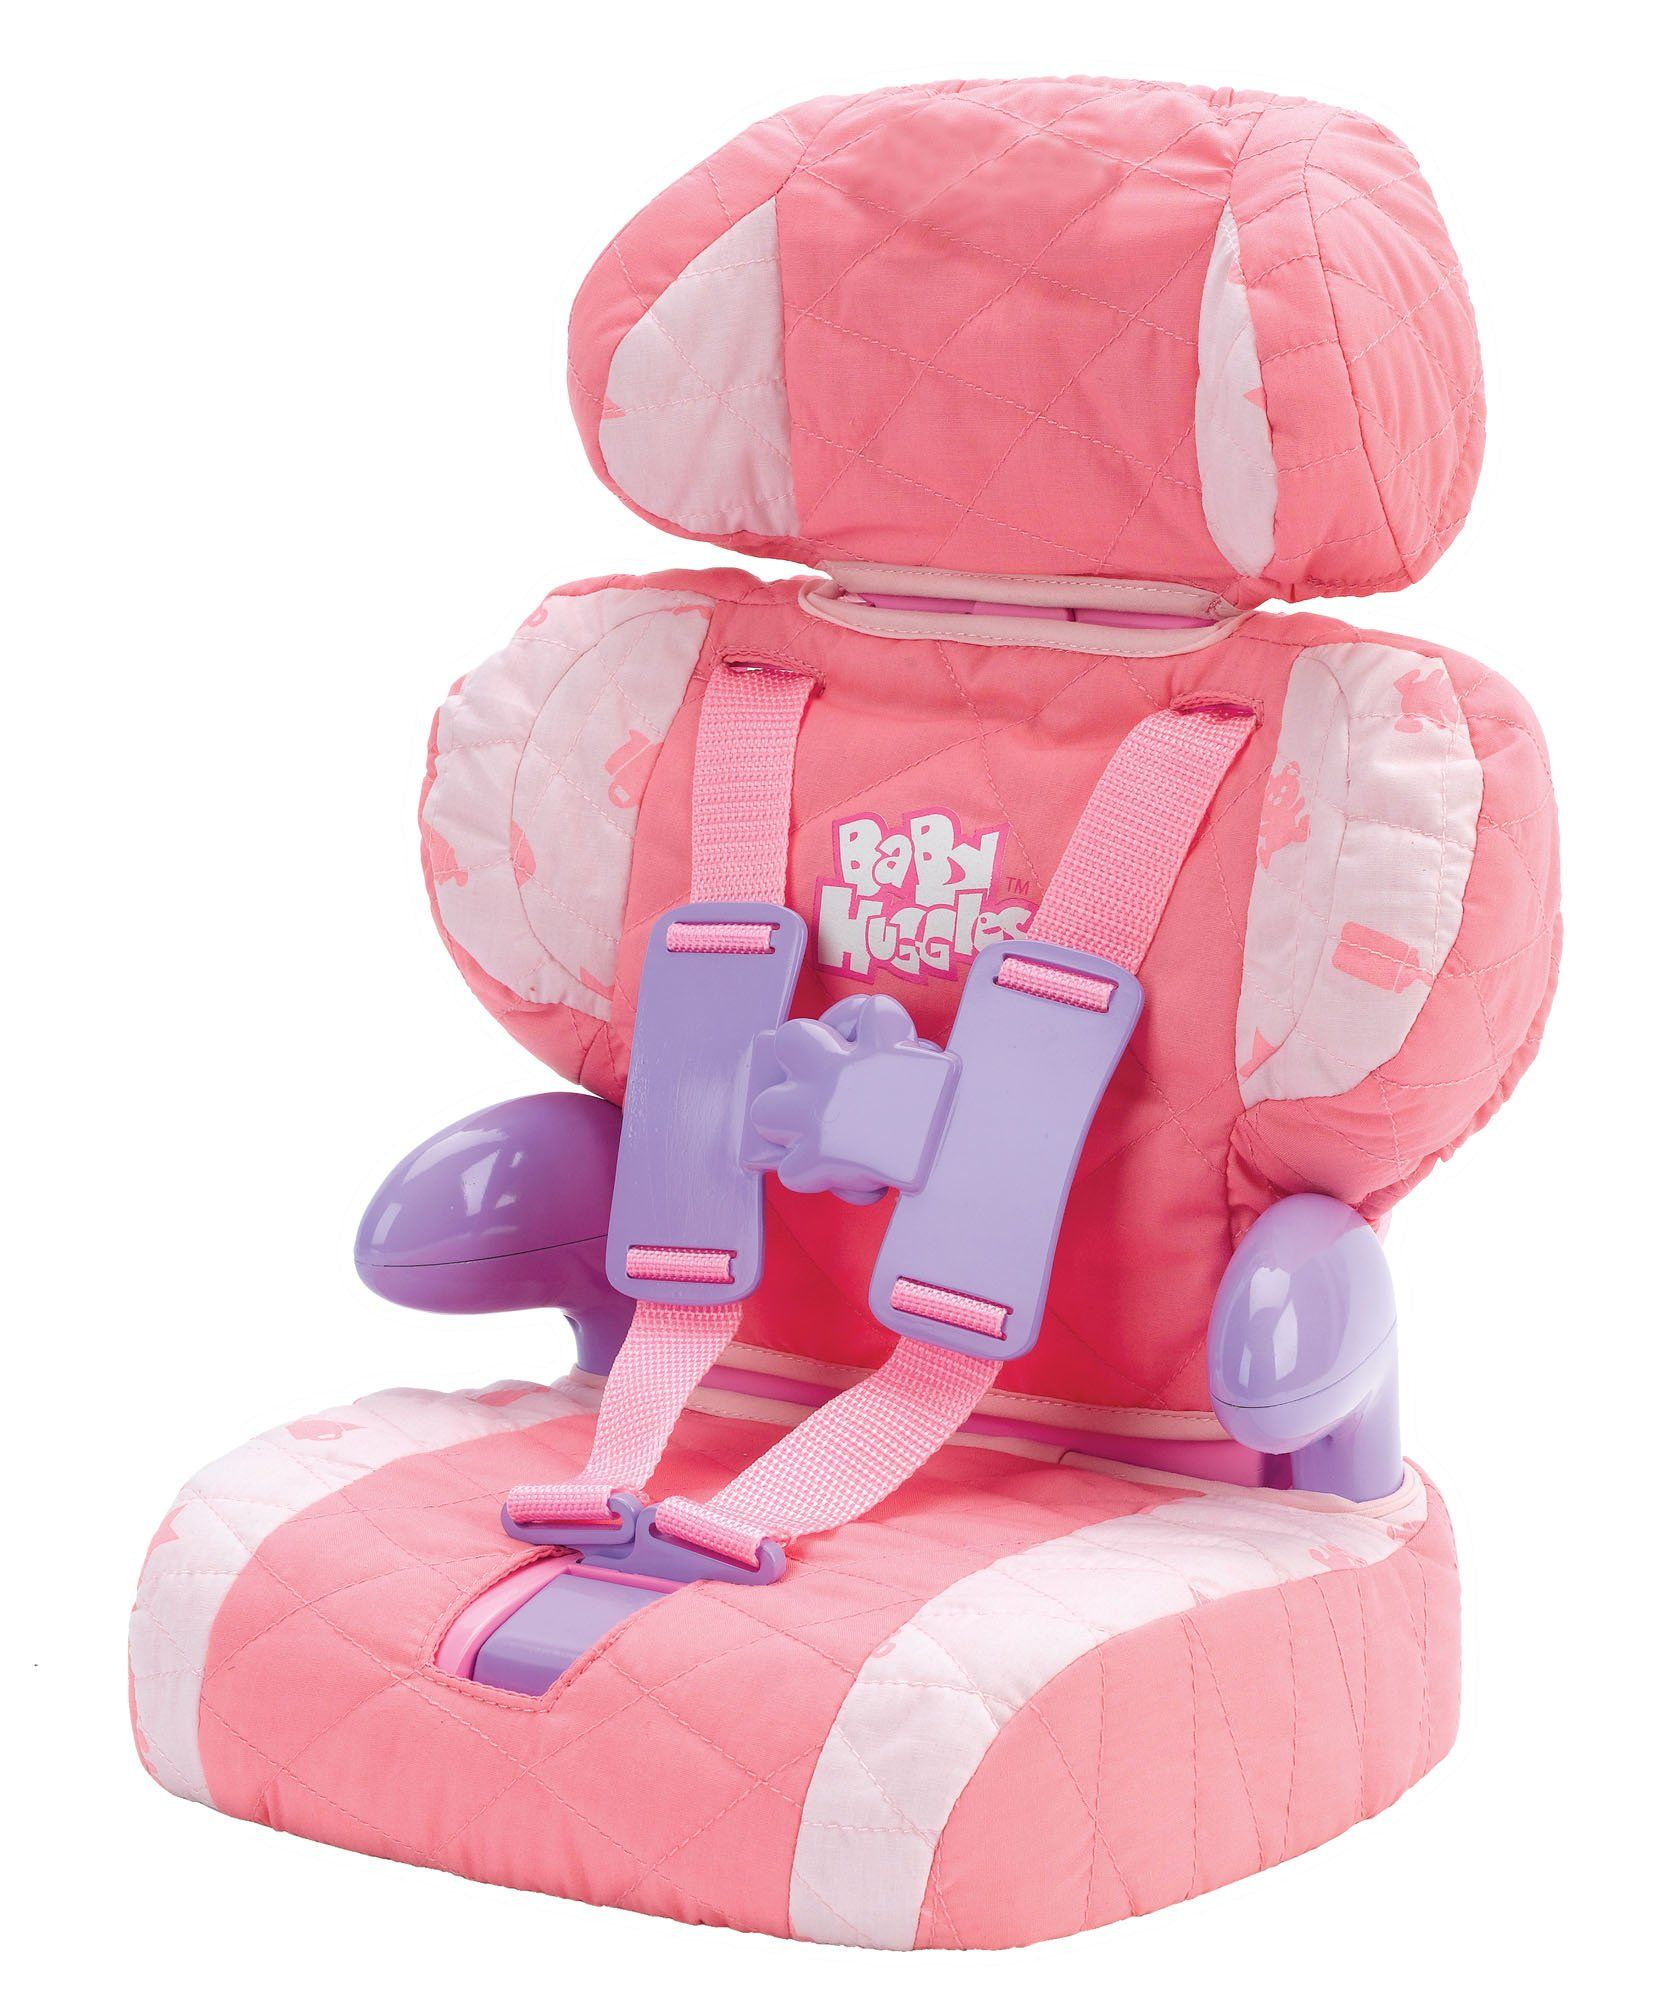 Doll Car Seat and Booster with Seatbelt for Dolls and